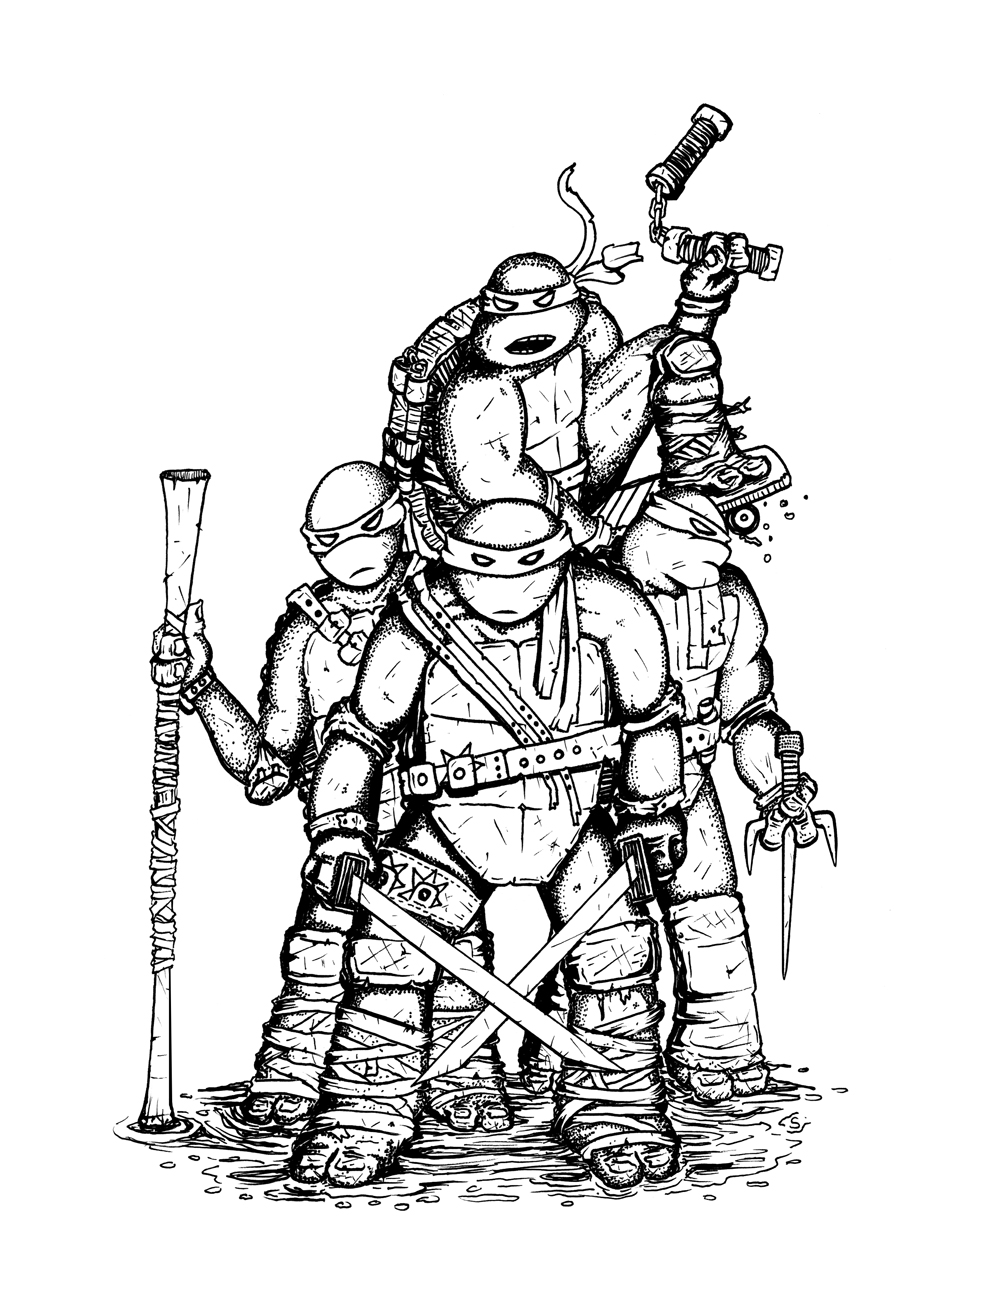 teenage mutant ninja turtles 2012 coloring pages - donatello tmnt 2012 coloring pages